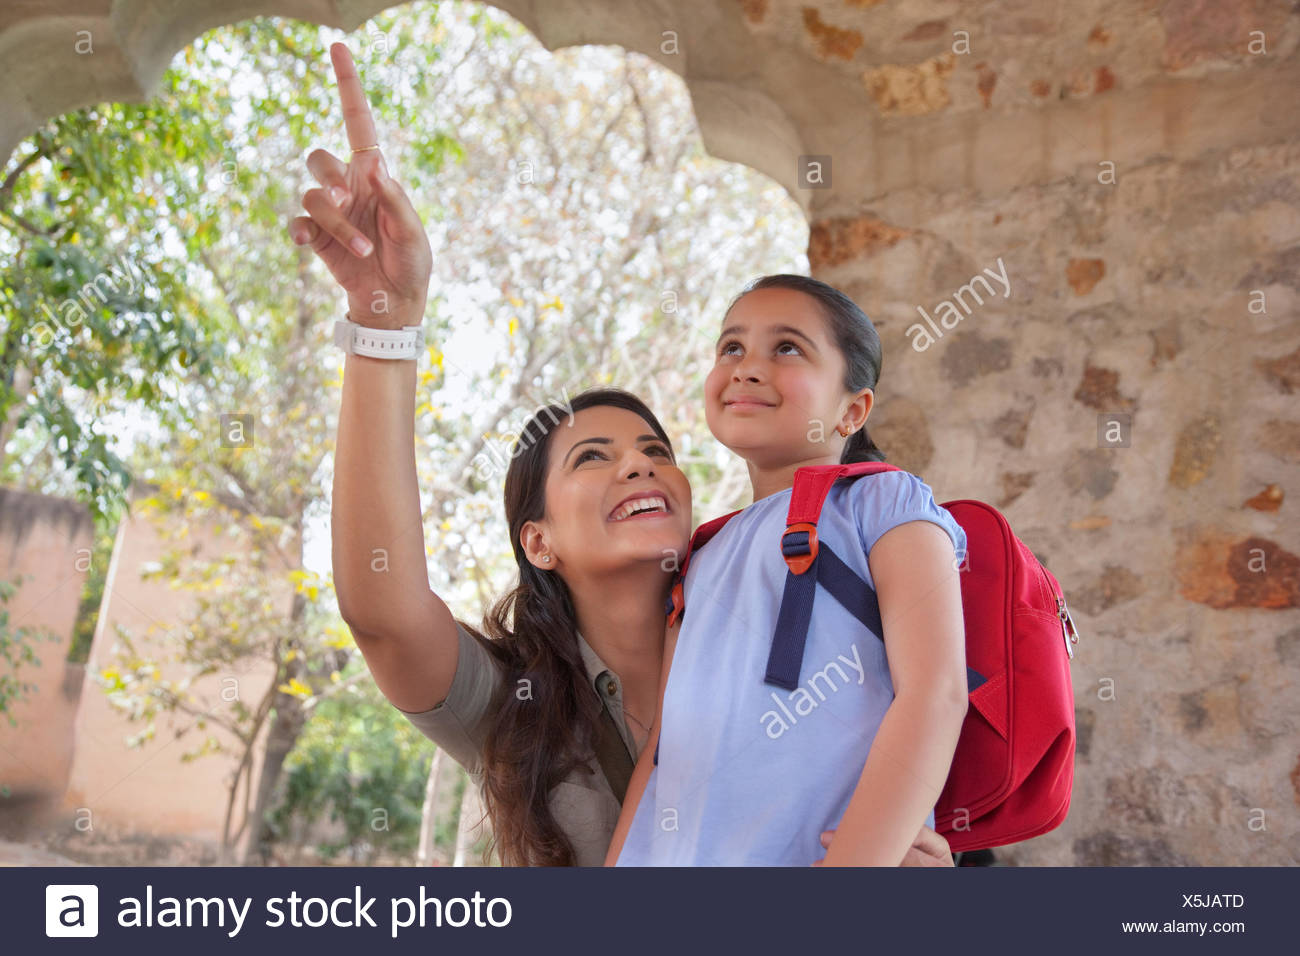 Woman pointing something out to daughter - Stock Image